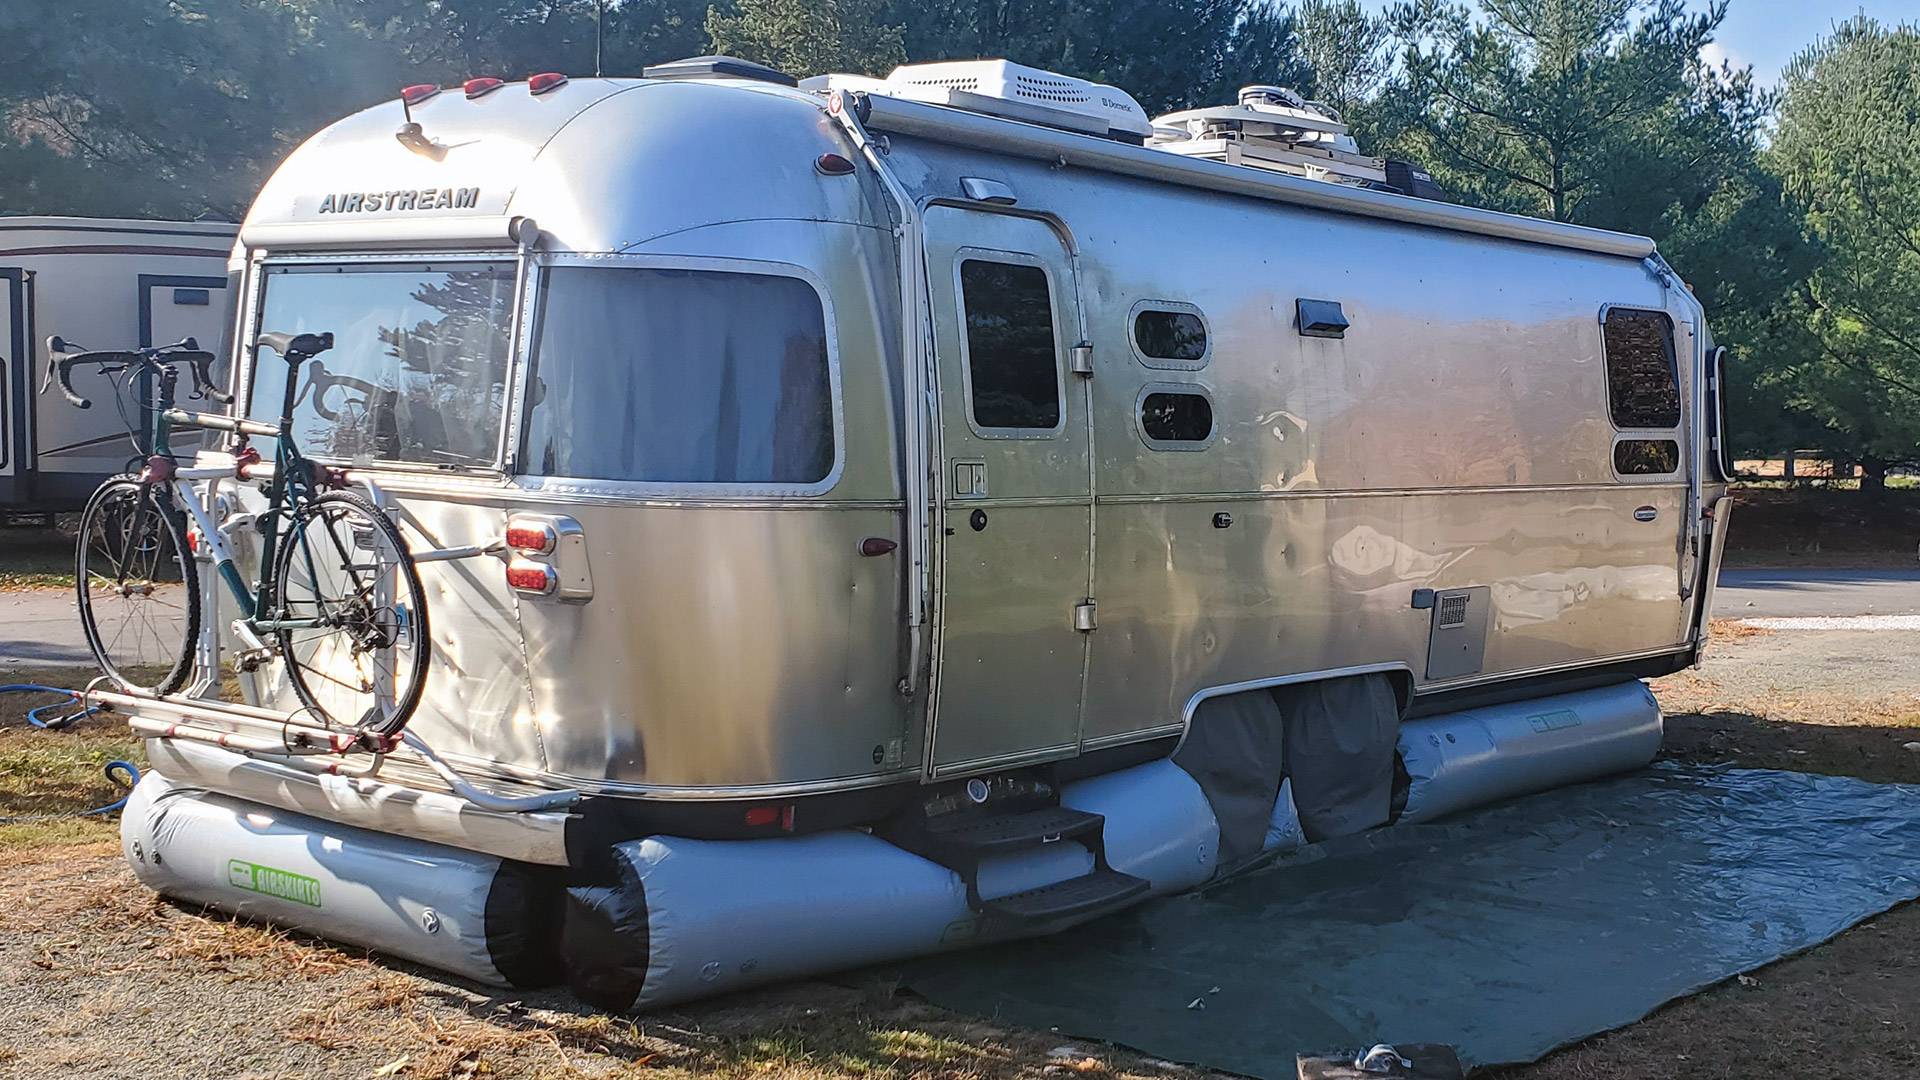 Camper skirting on Airstream